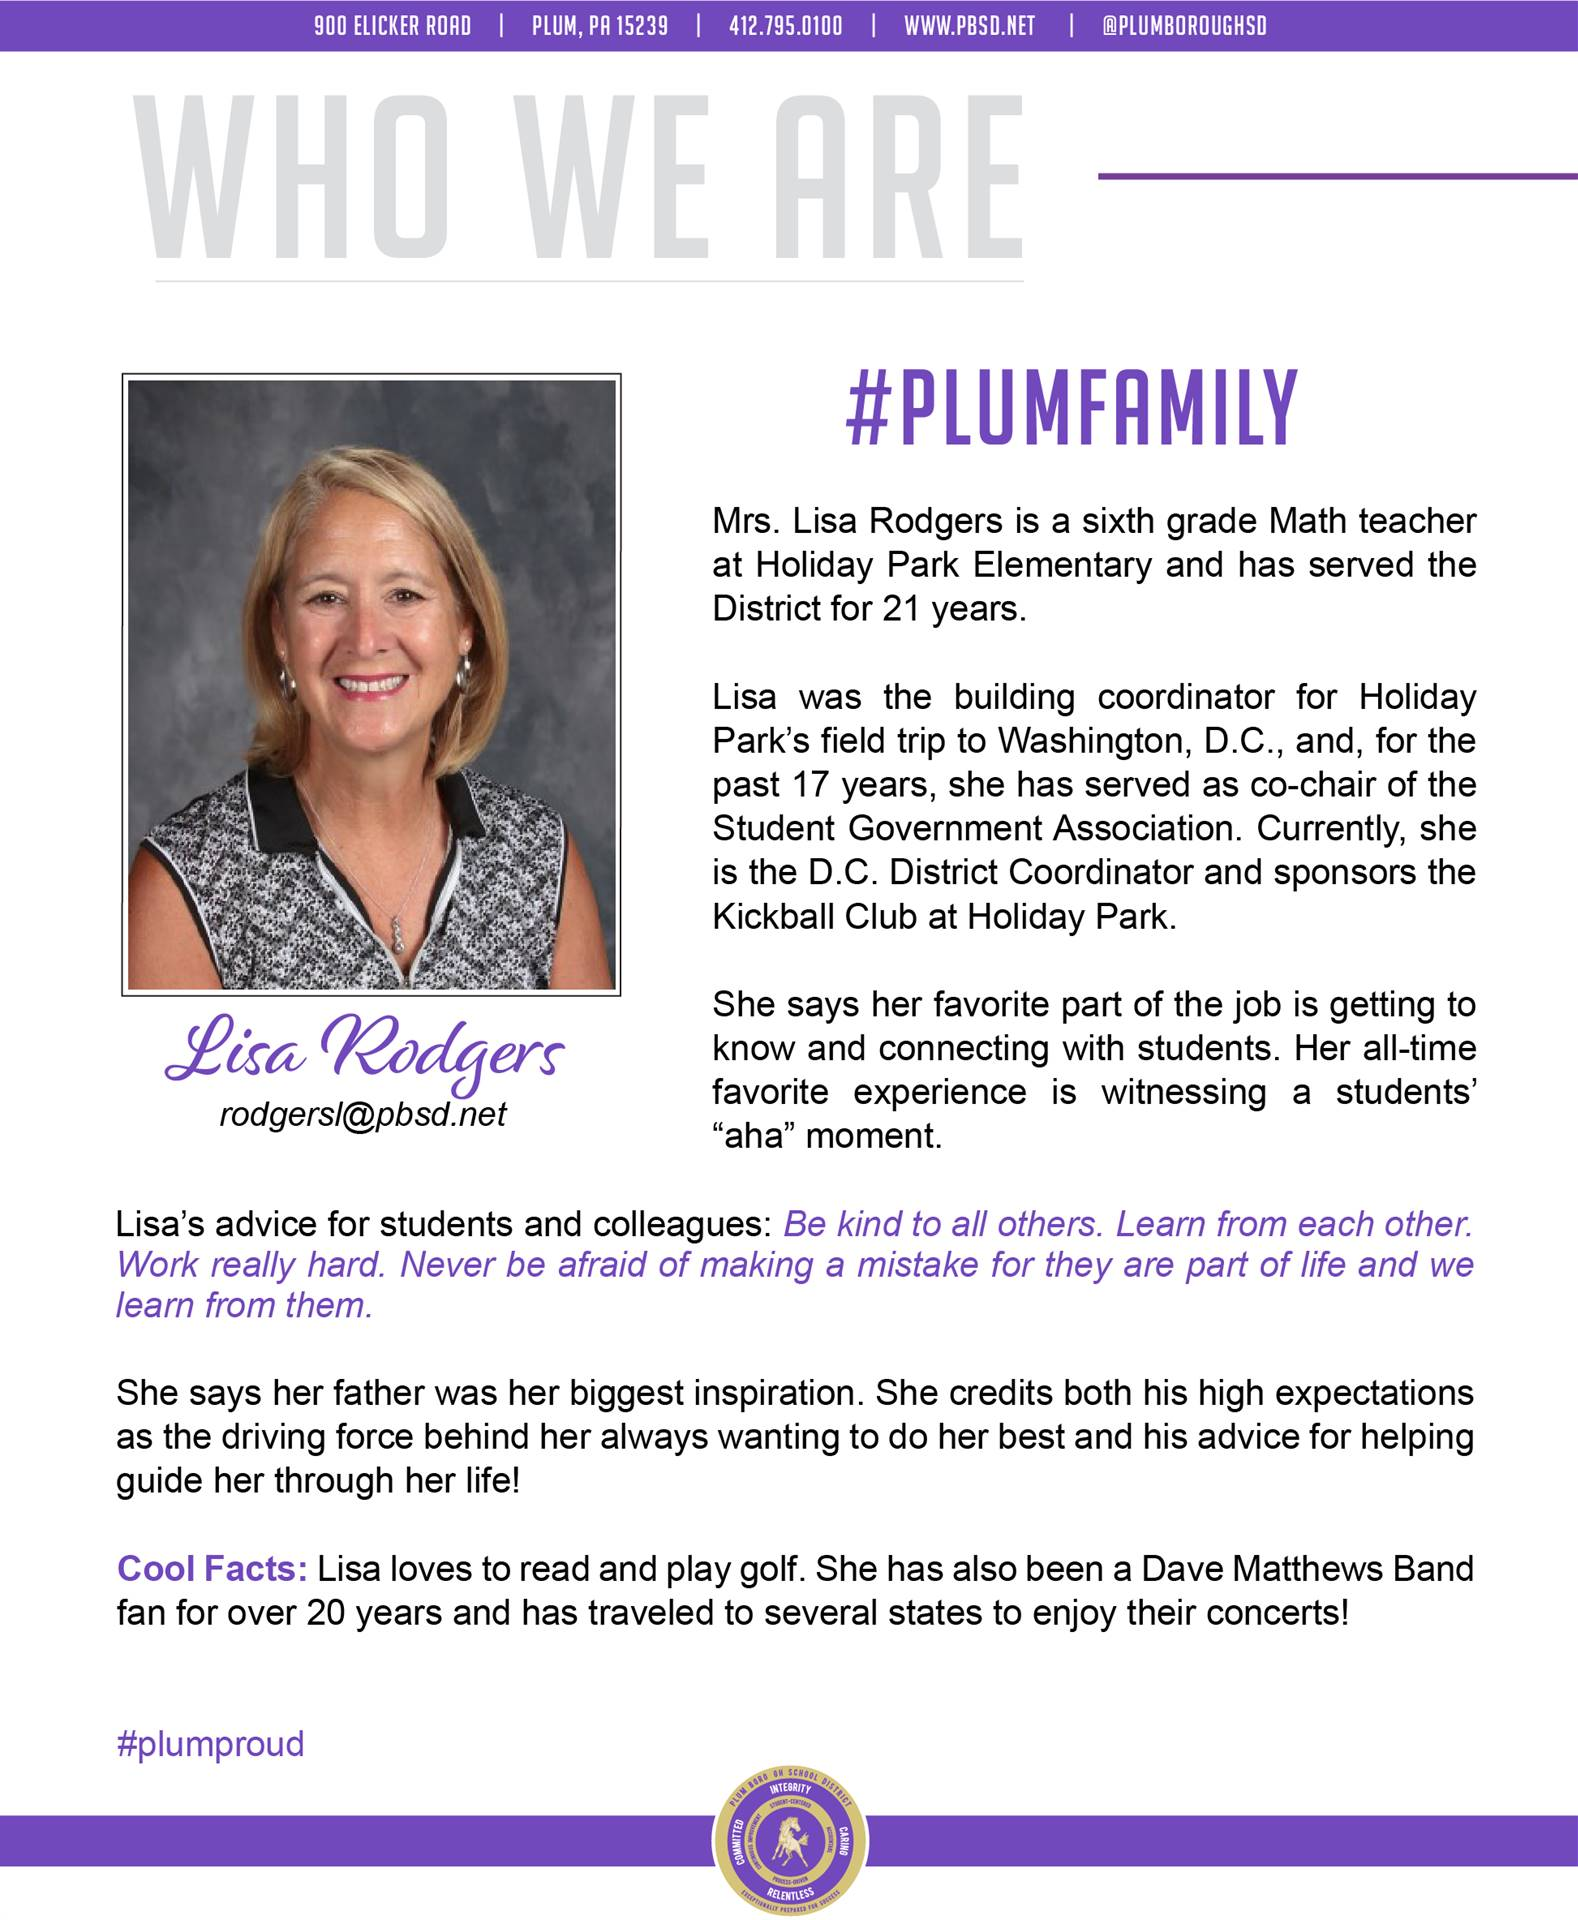 Who We Are Wednesday features Lisa Rodgers.